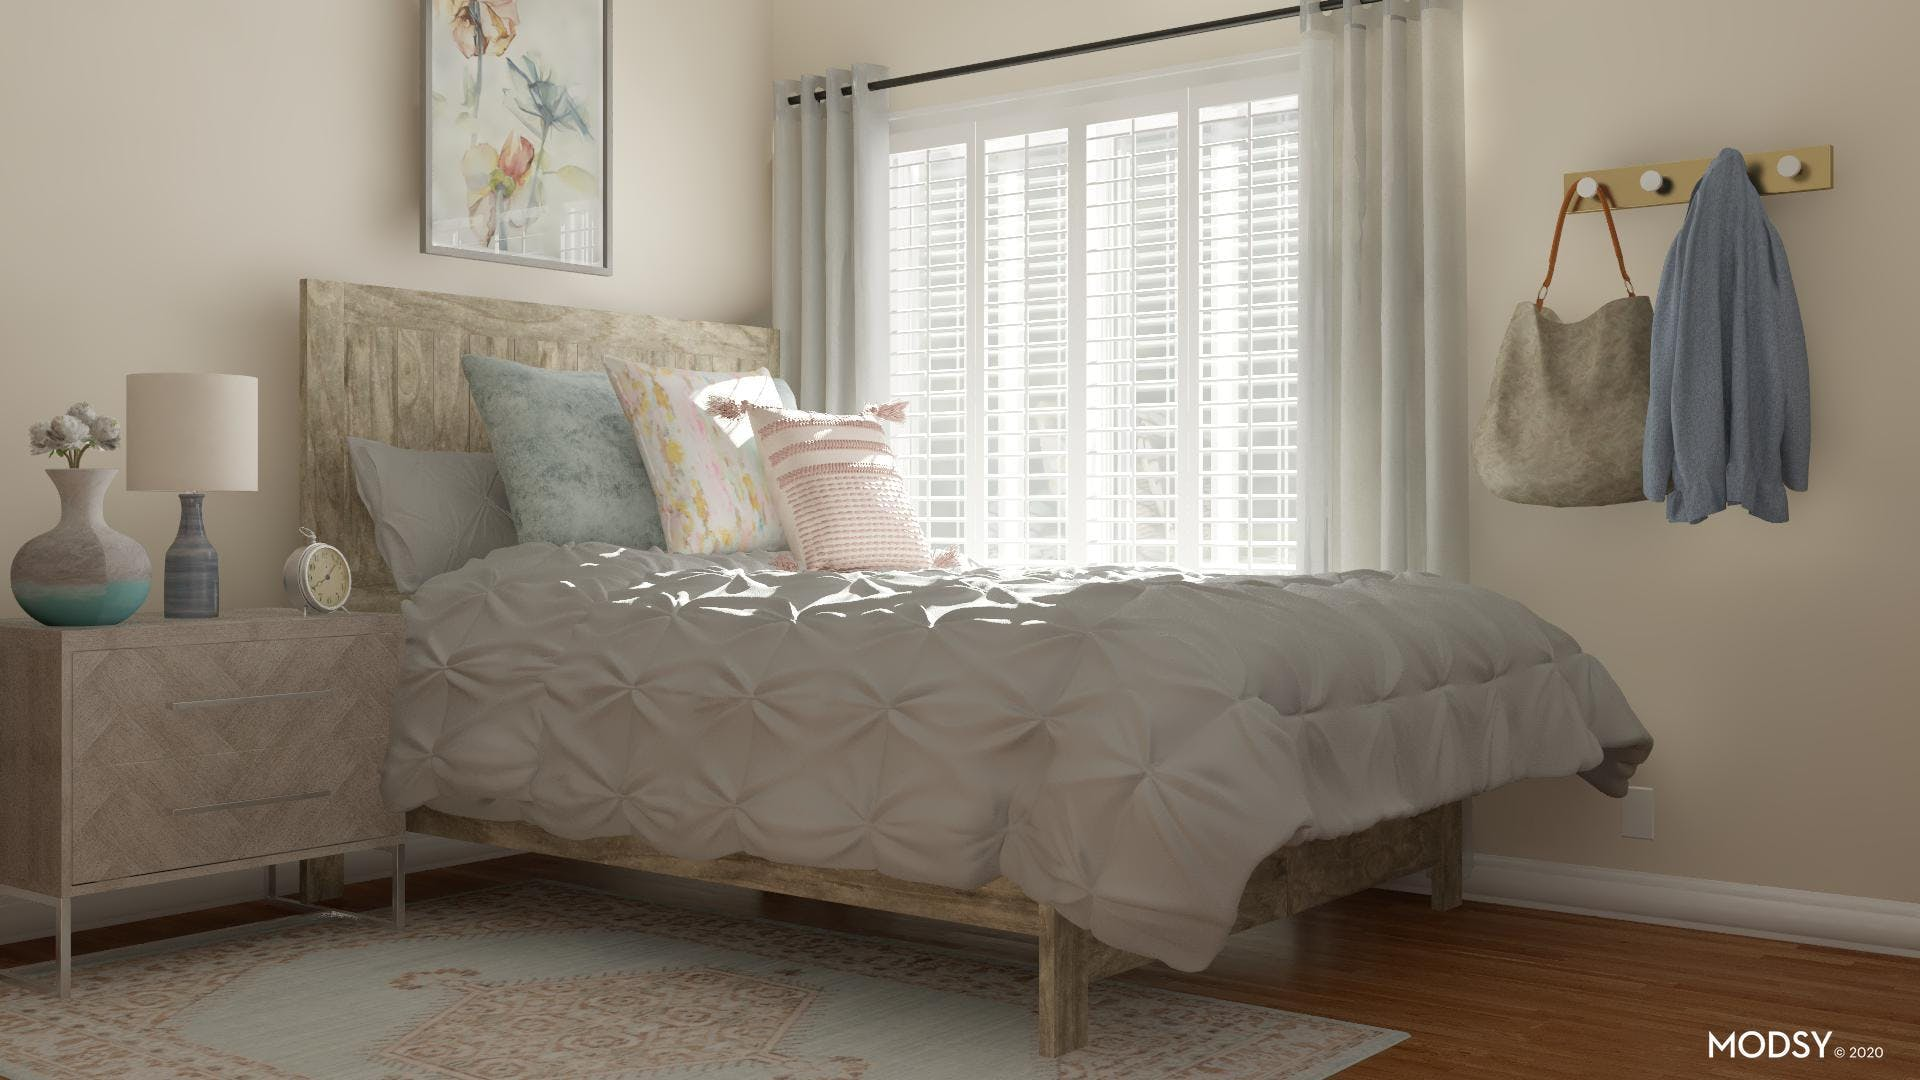 Soft And Rustic: Layered Textiles